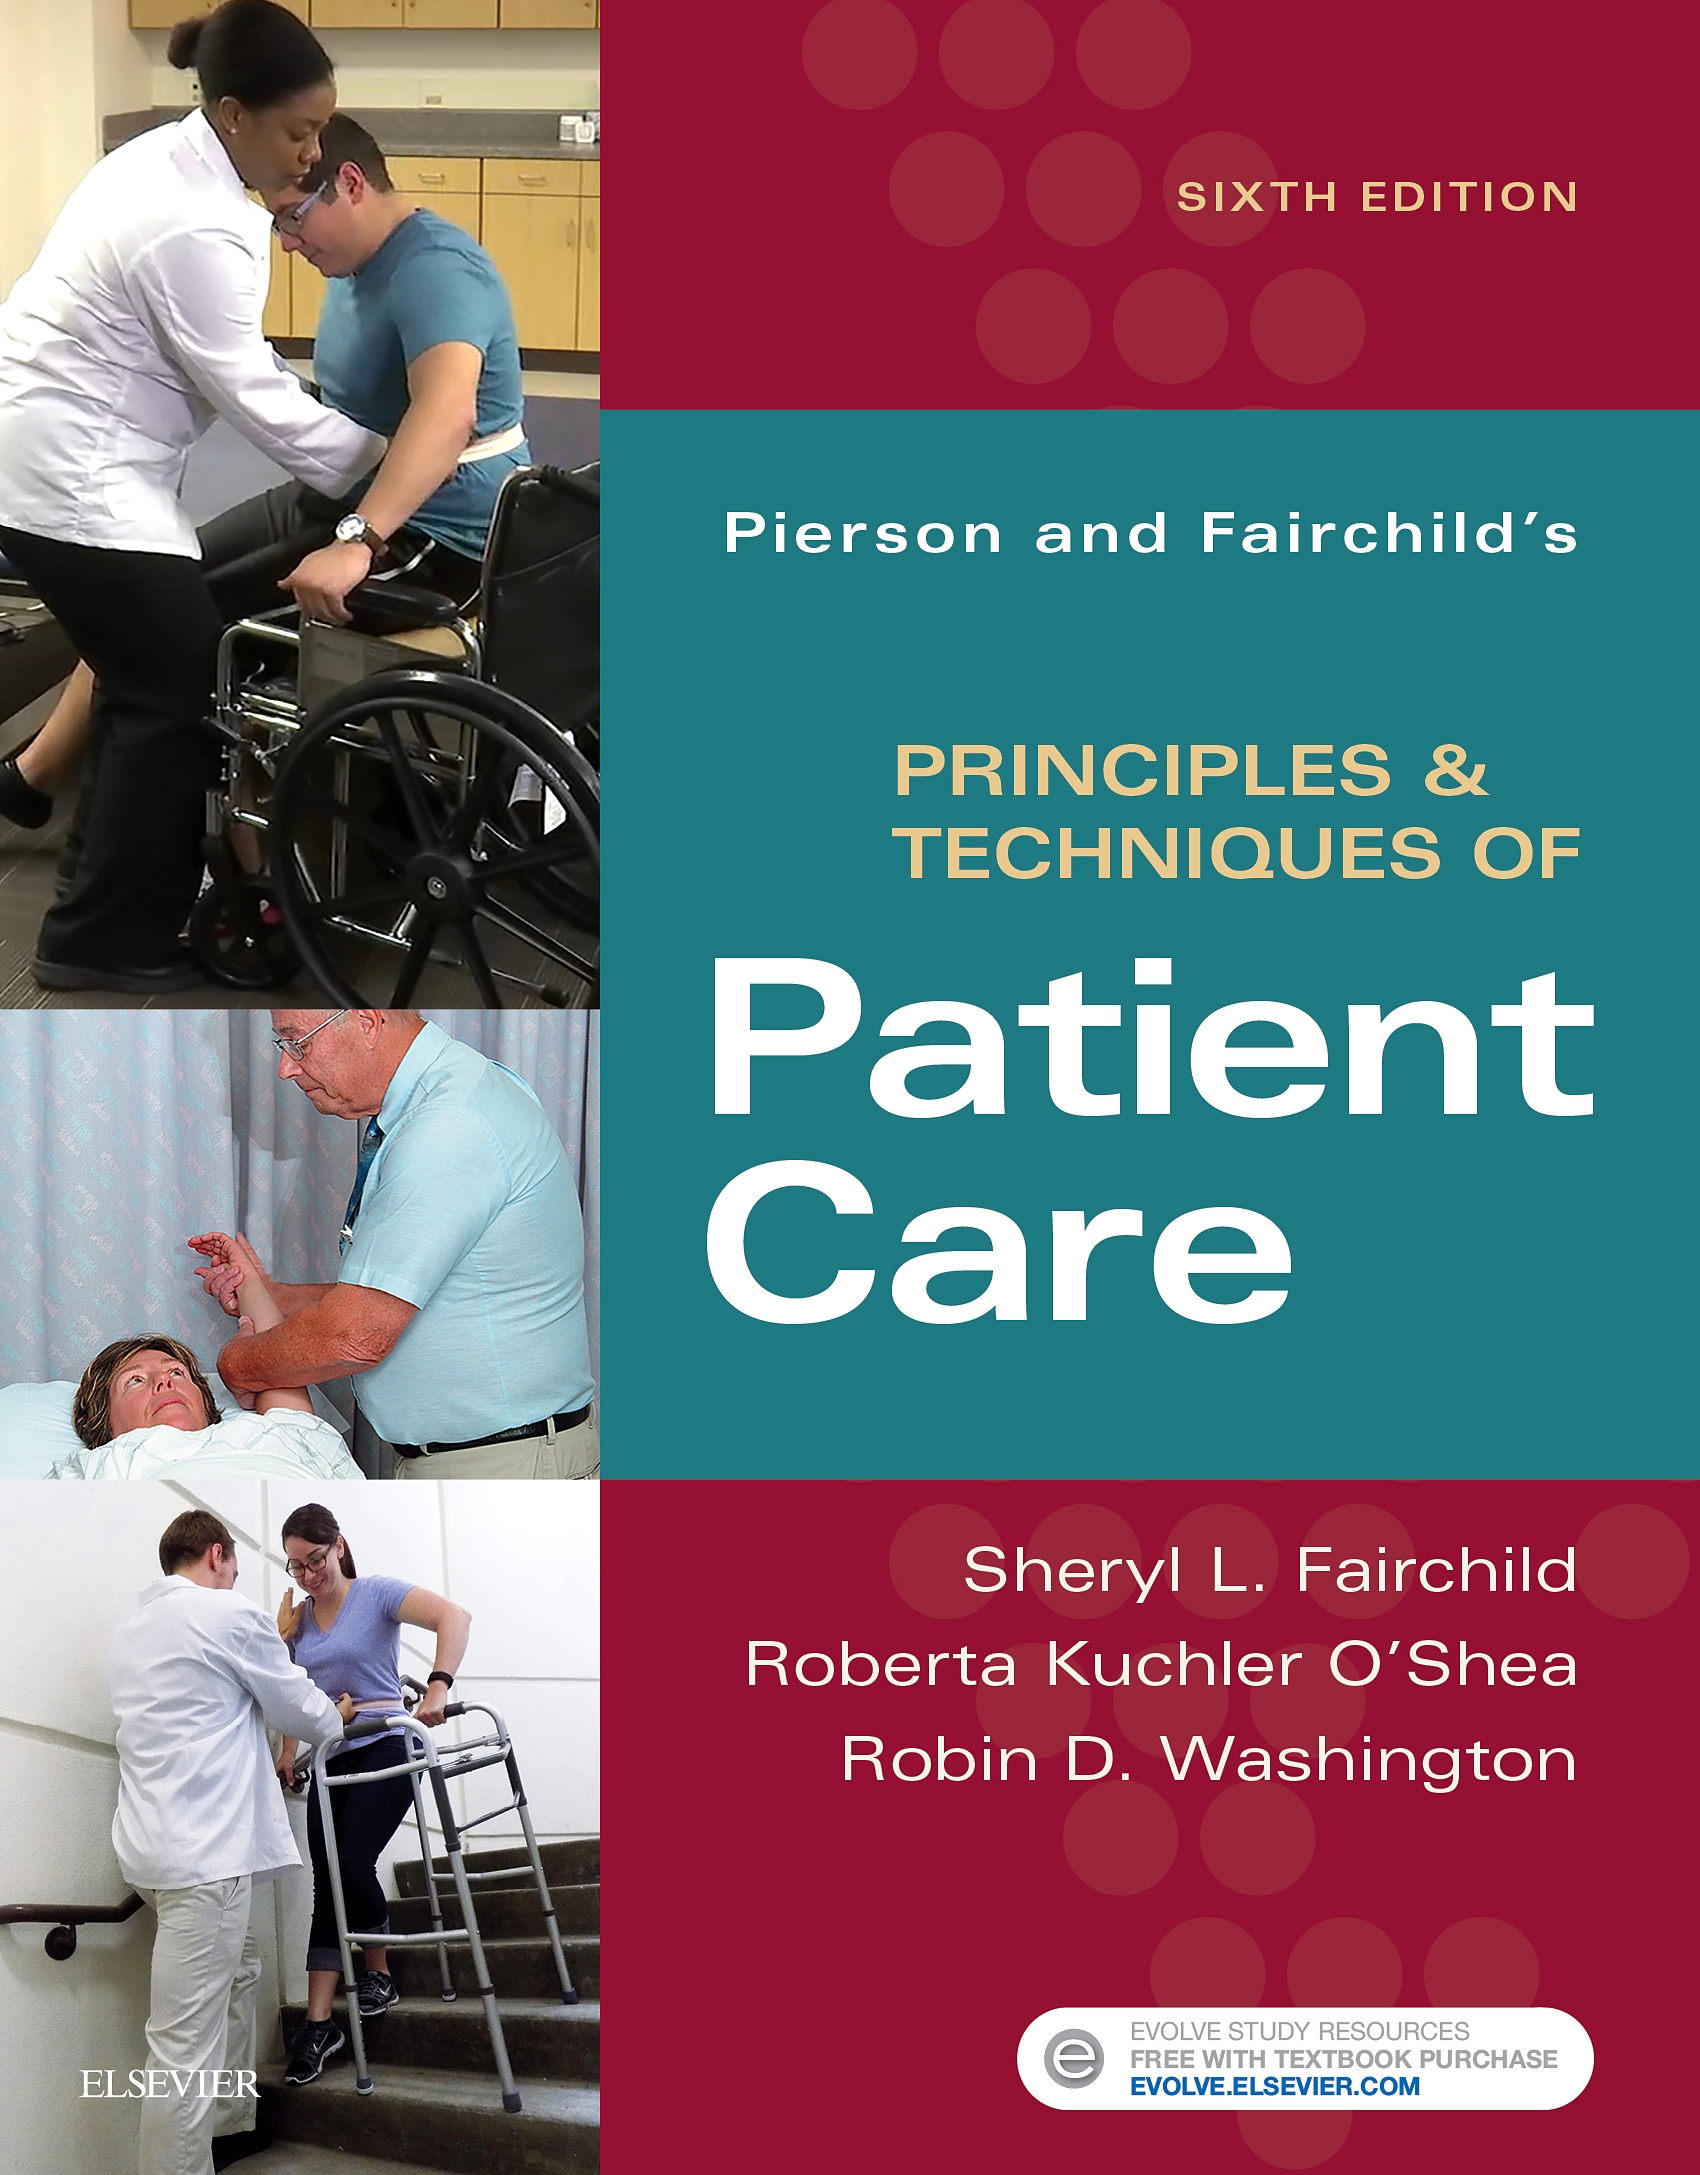 Evolve Resources for Pierson and Fairchild's Principles & Techniques of Patient Care, 6th Edition